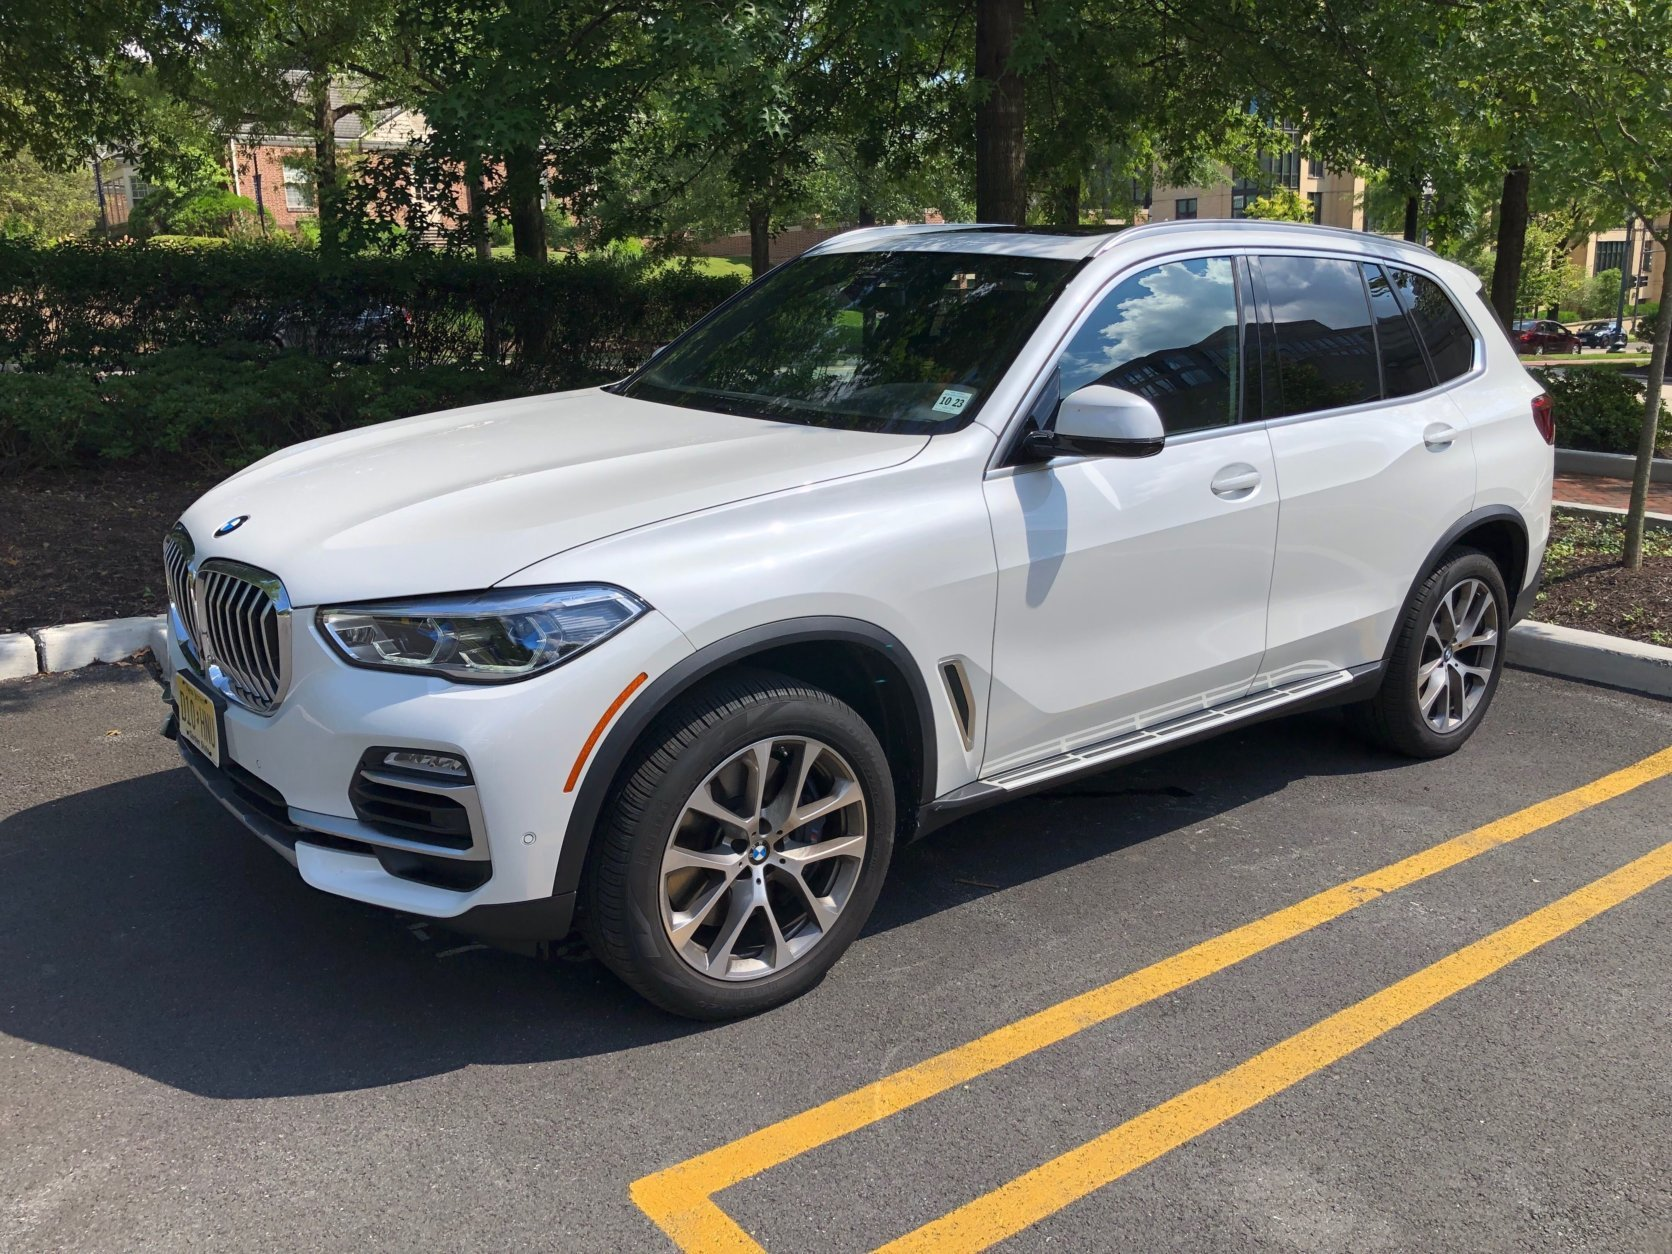 <h2><strong>BMW X5 xDrive40i</strong></h2> <p><strong>Price as driven:</strong> $73,980</p> <p>The X5 is now more hushed on the road and handles bumps better. The turbo 6-cylinder has plenty of punch. Like the Buick, the interior materials also seem nicer than before.</p>